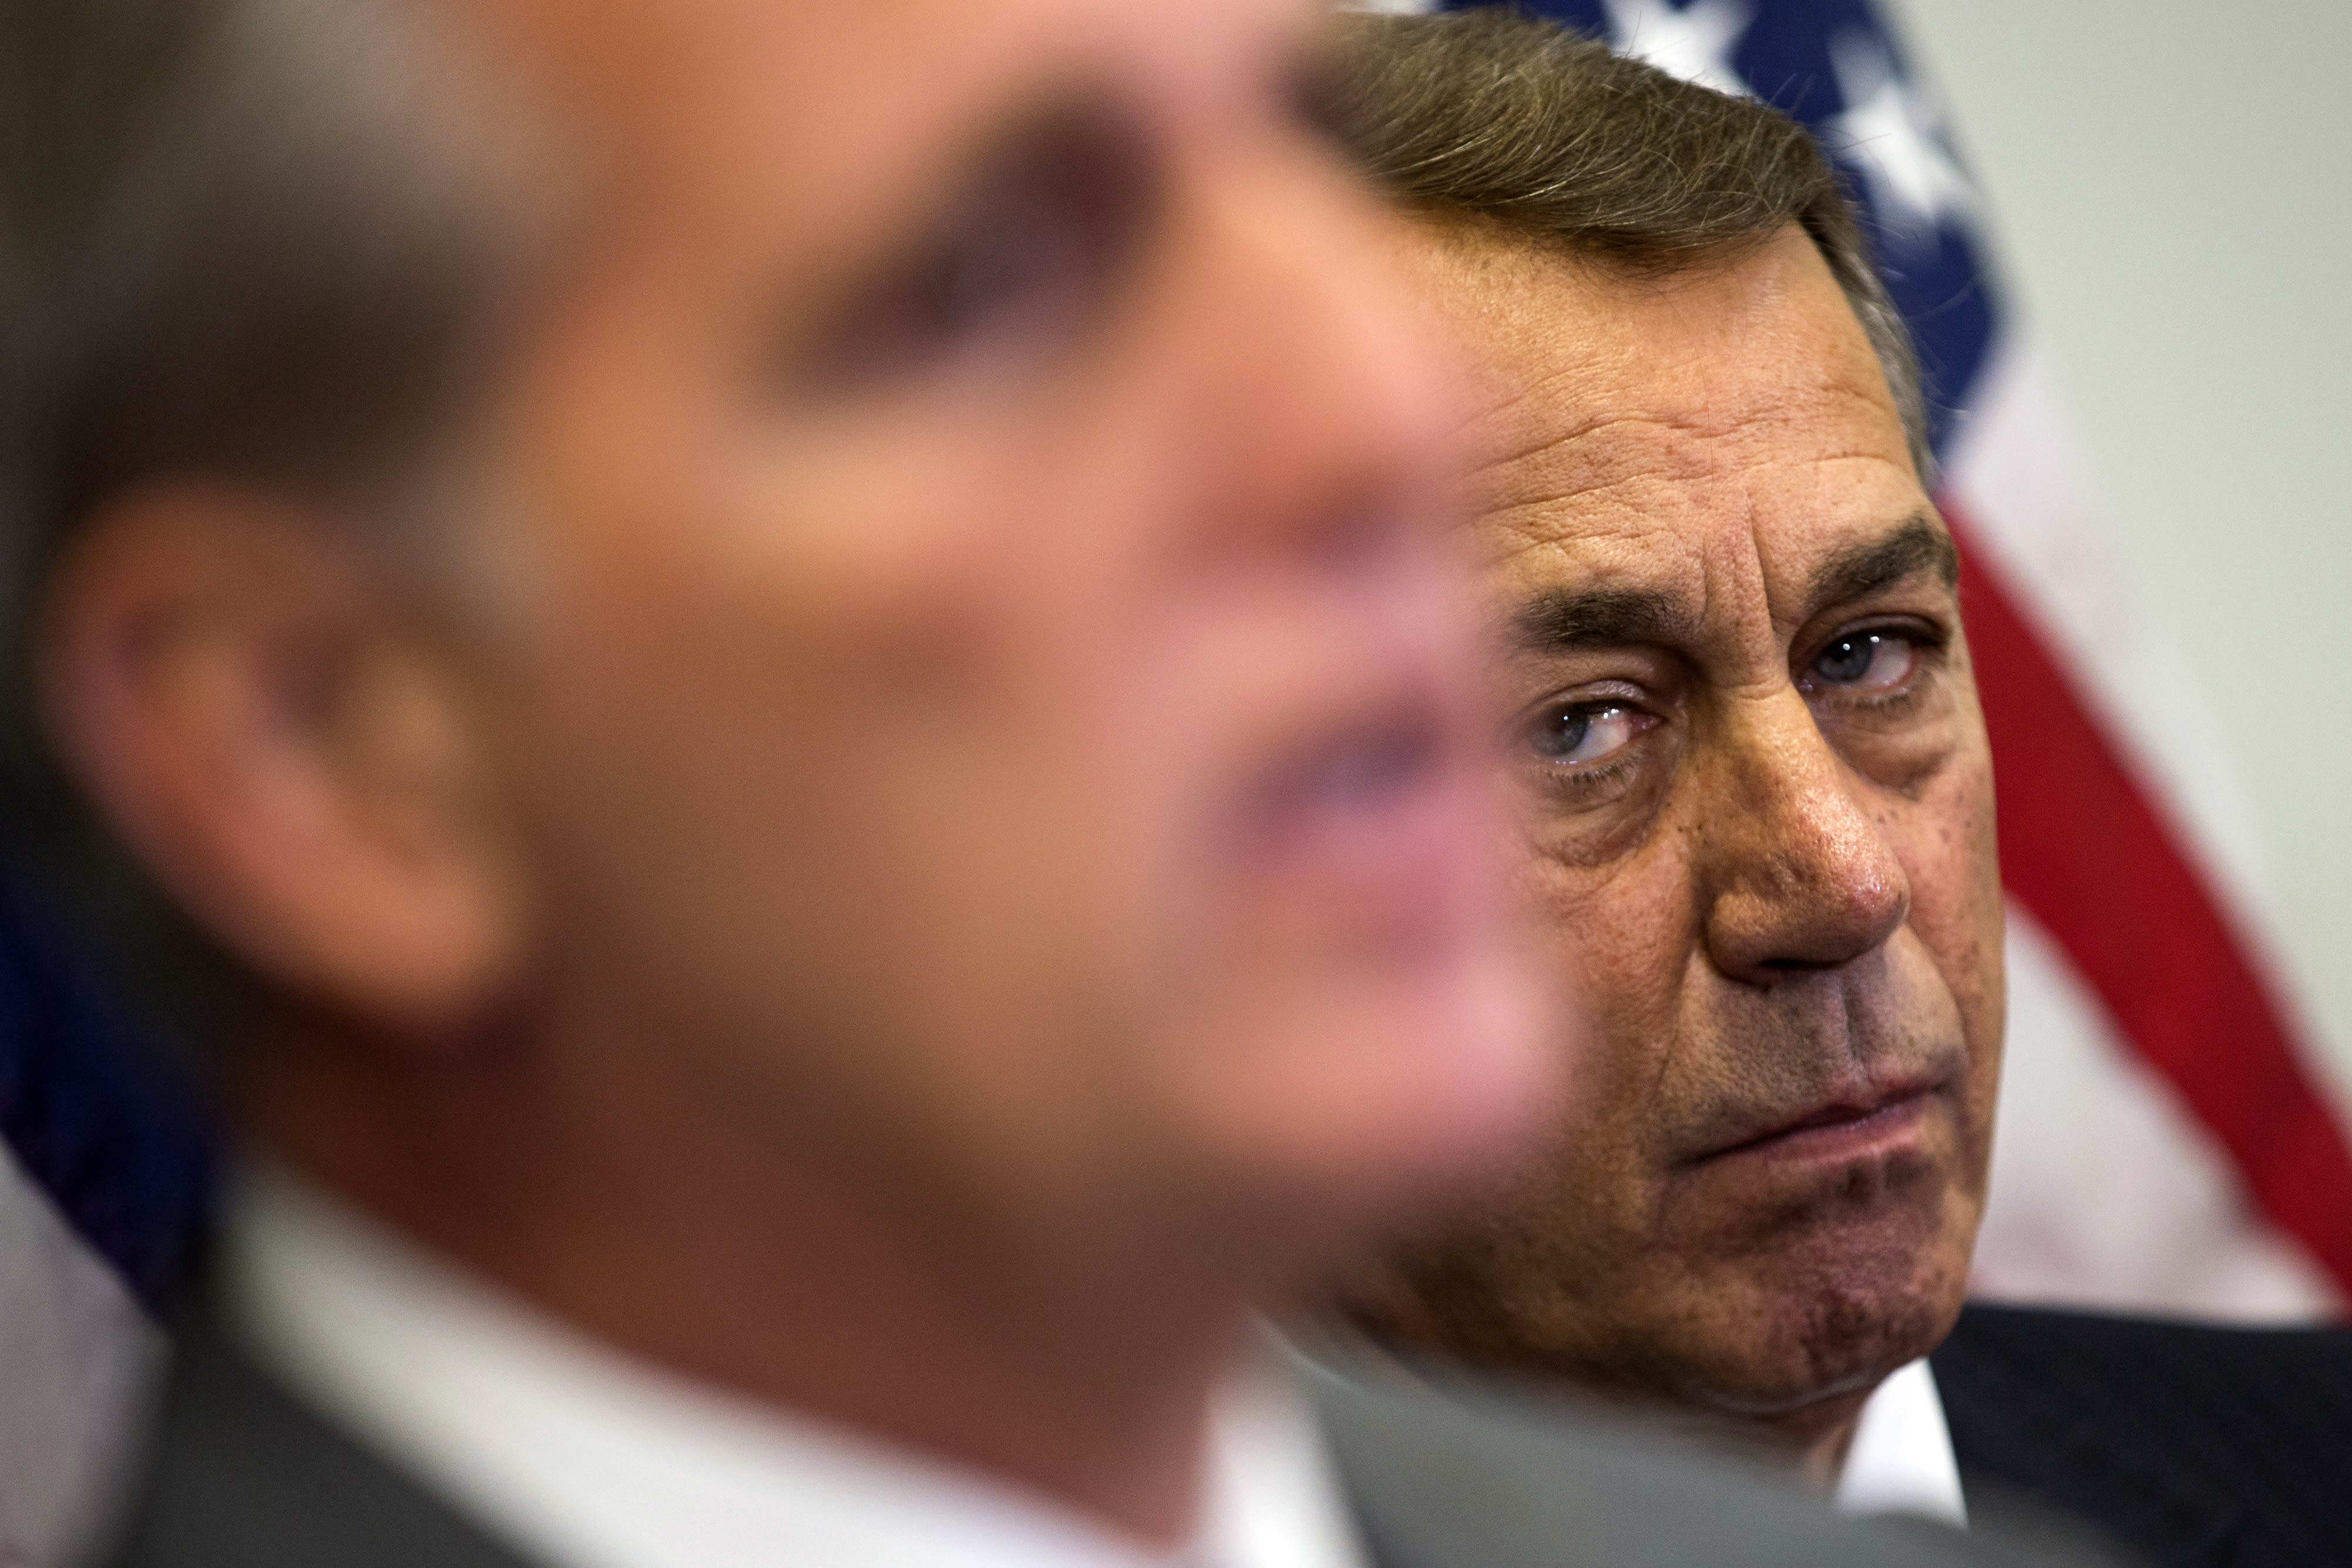 John Boehner's here to stay, for now, with nothing to lose